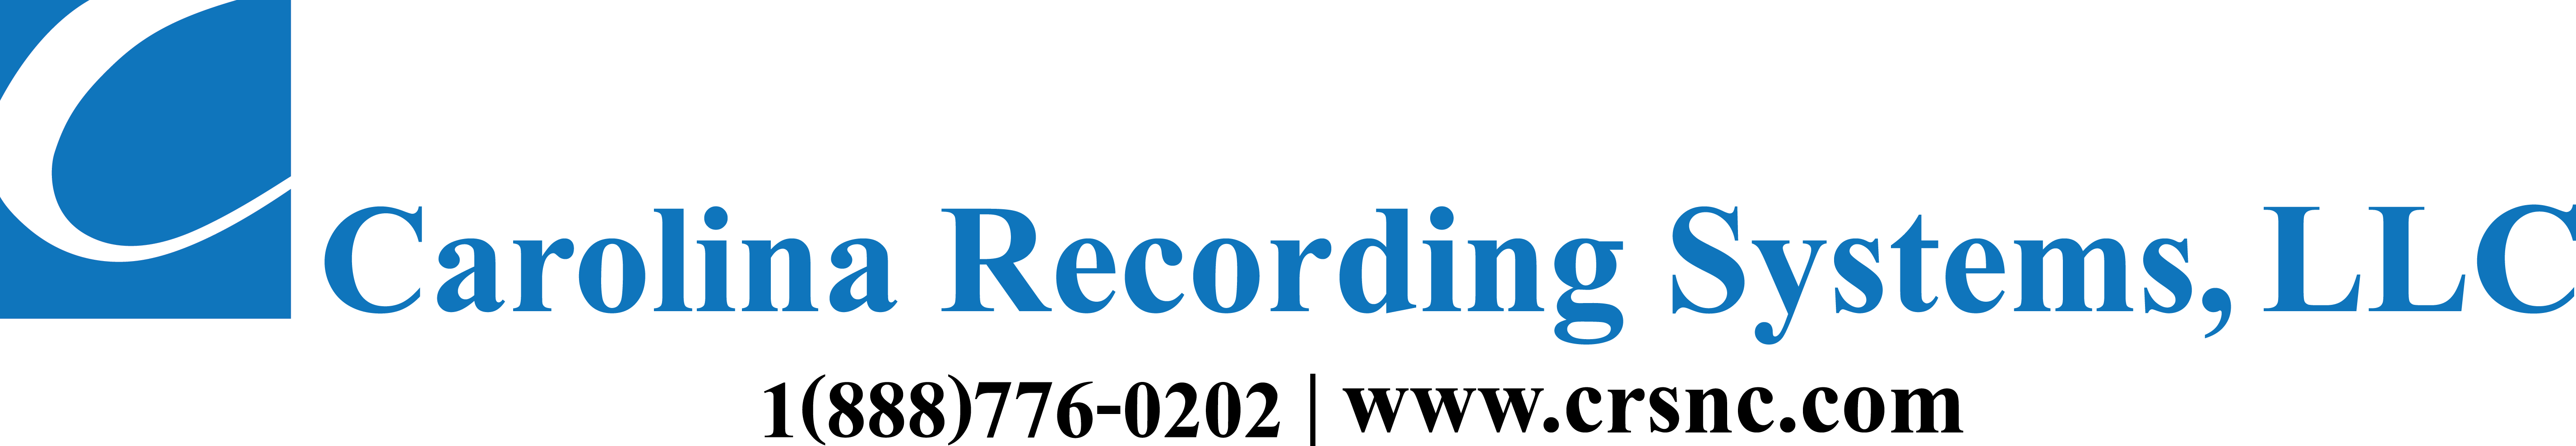 Carolina Recording Systems